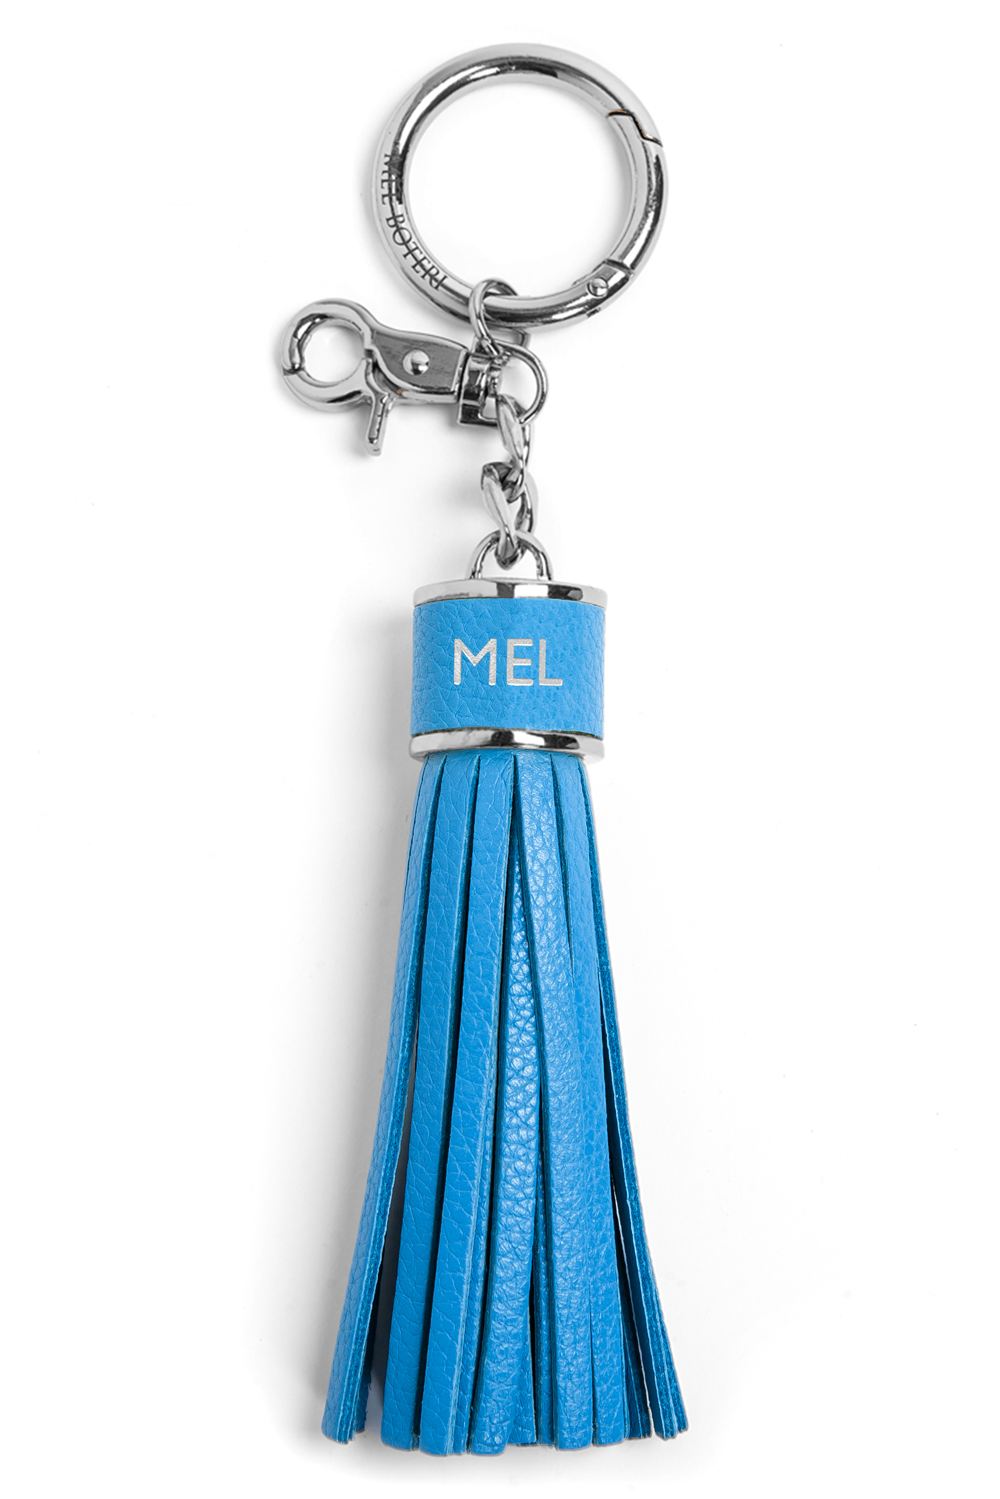 The Mel Boteri Pebbled-Leather Tassel Charm | Aqua Leather With Silver Hardware | Mel Boteri Gift Ideas